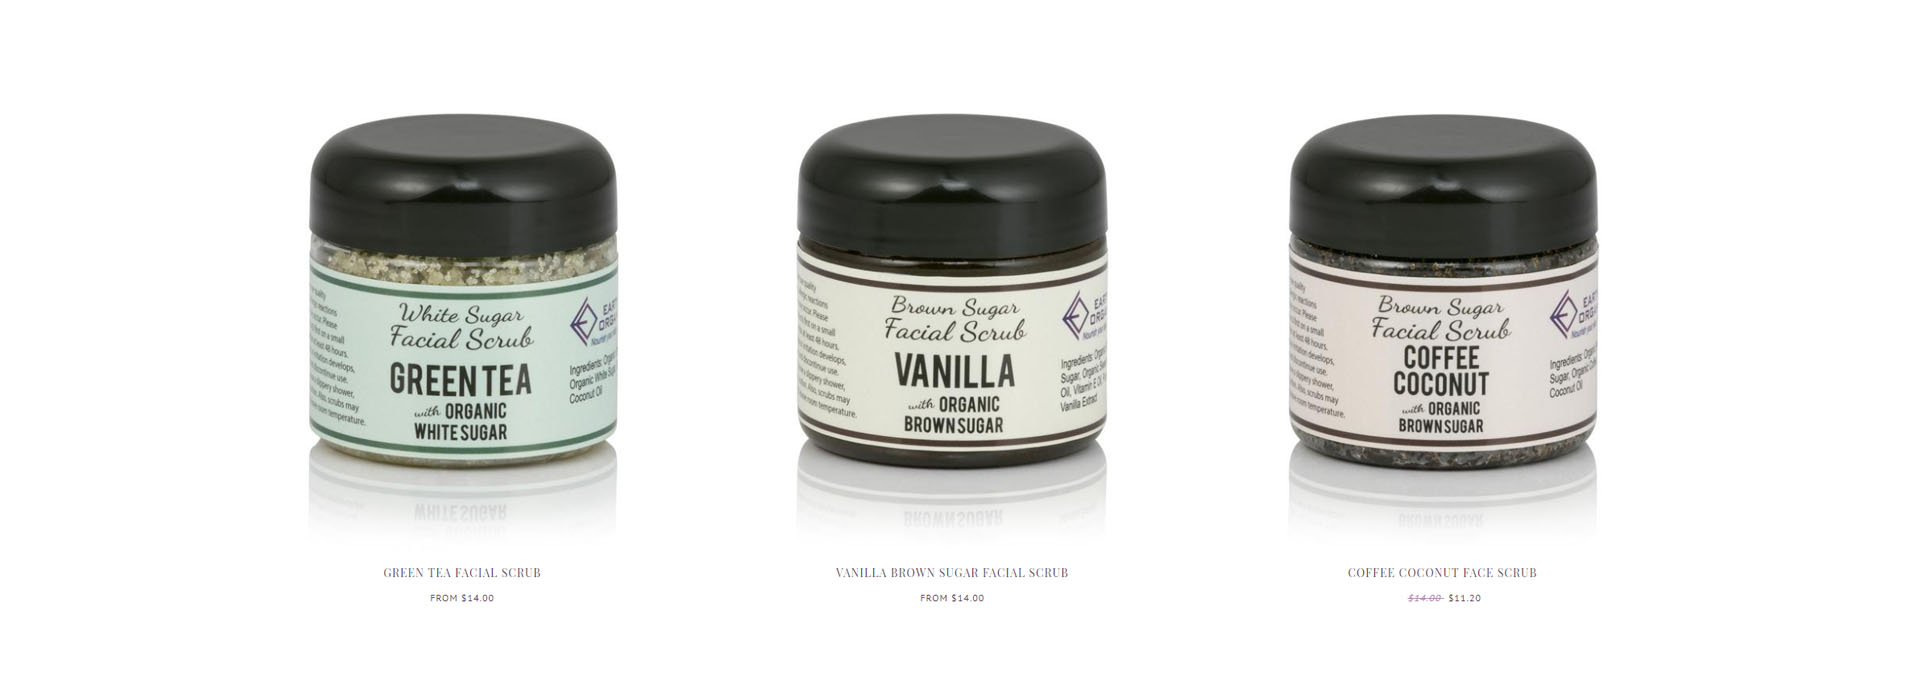 Earth's Organics facial